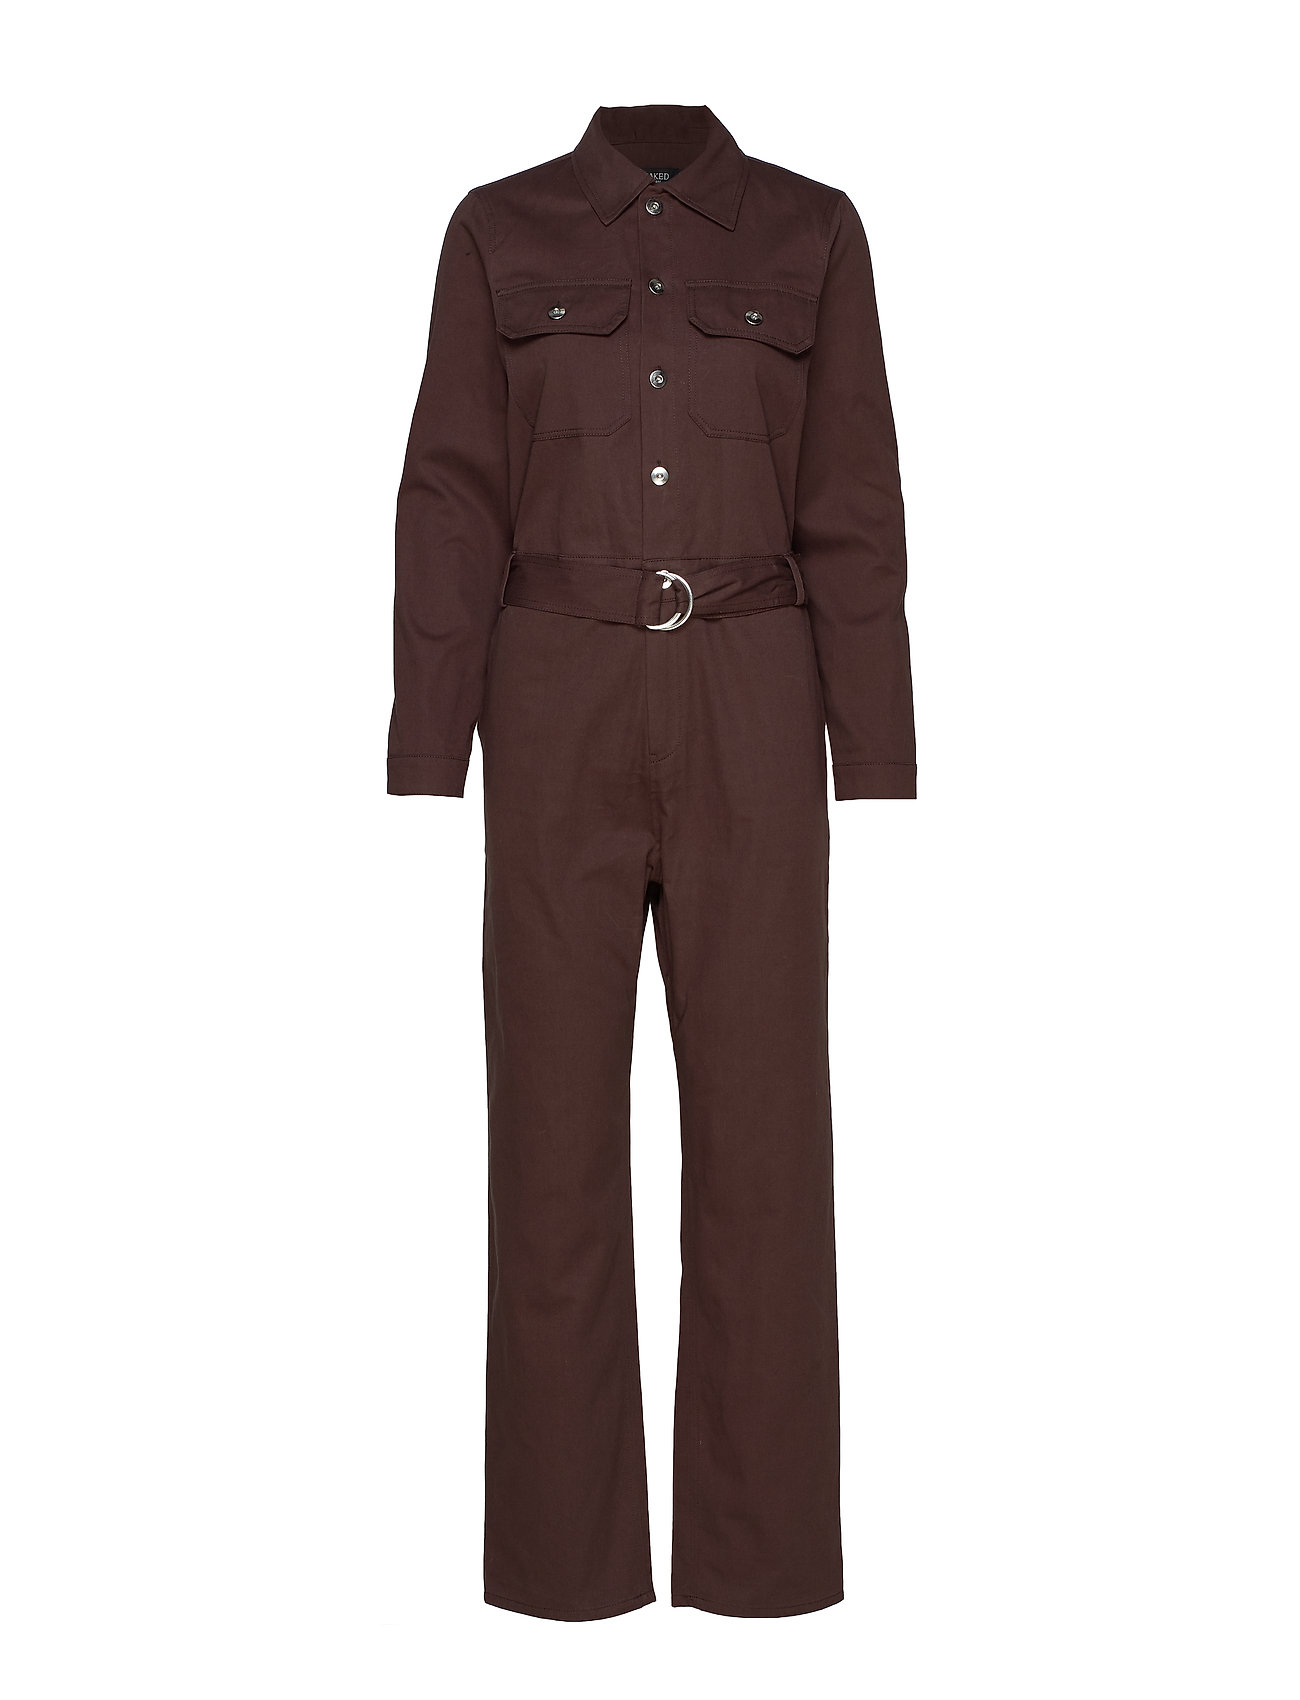 Soaked in Luxury SL Cedar Jumpsuit - CHOCOLATE TORTE